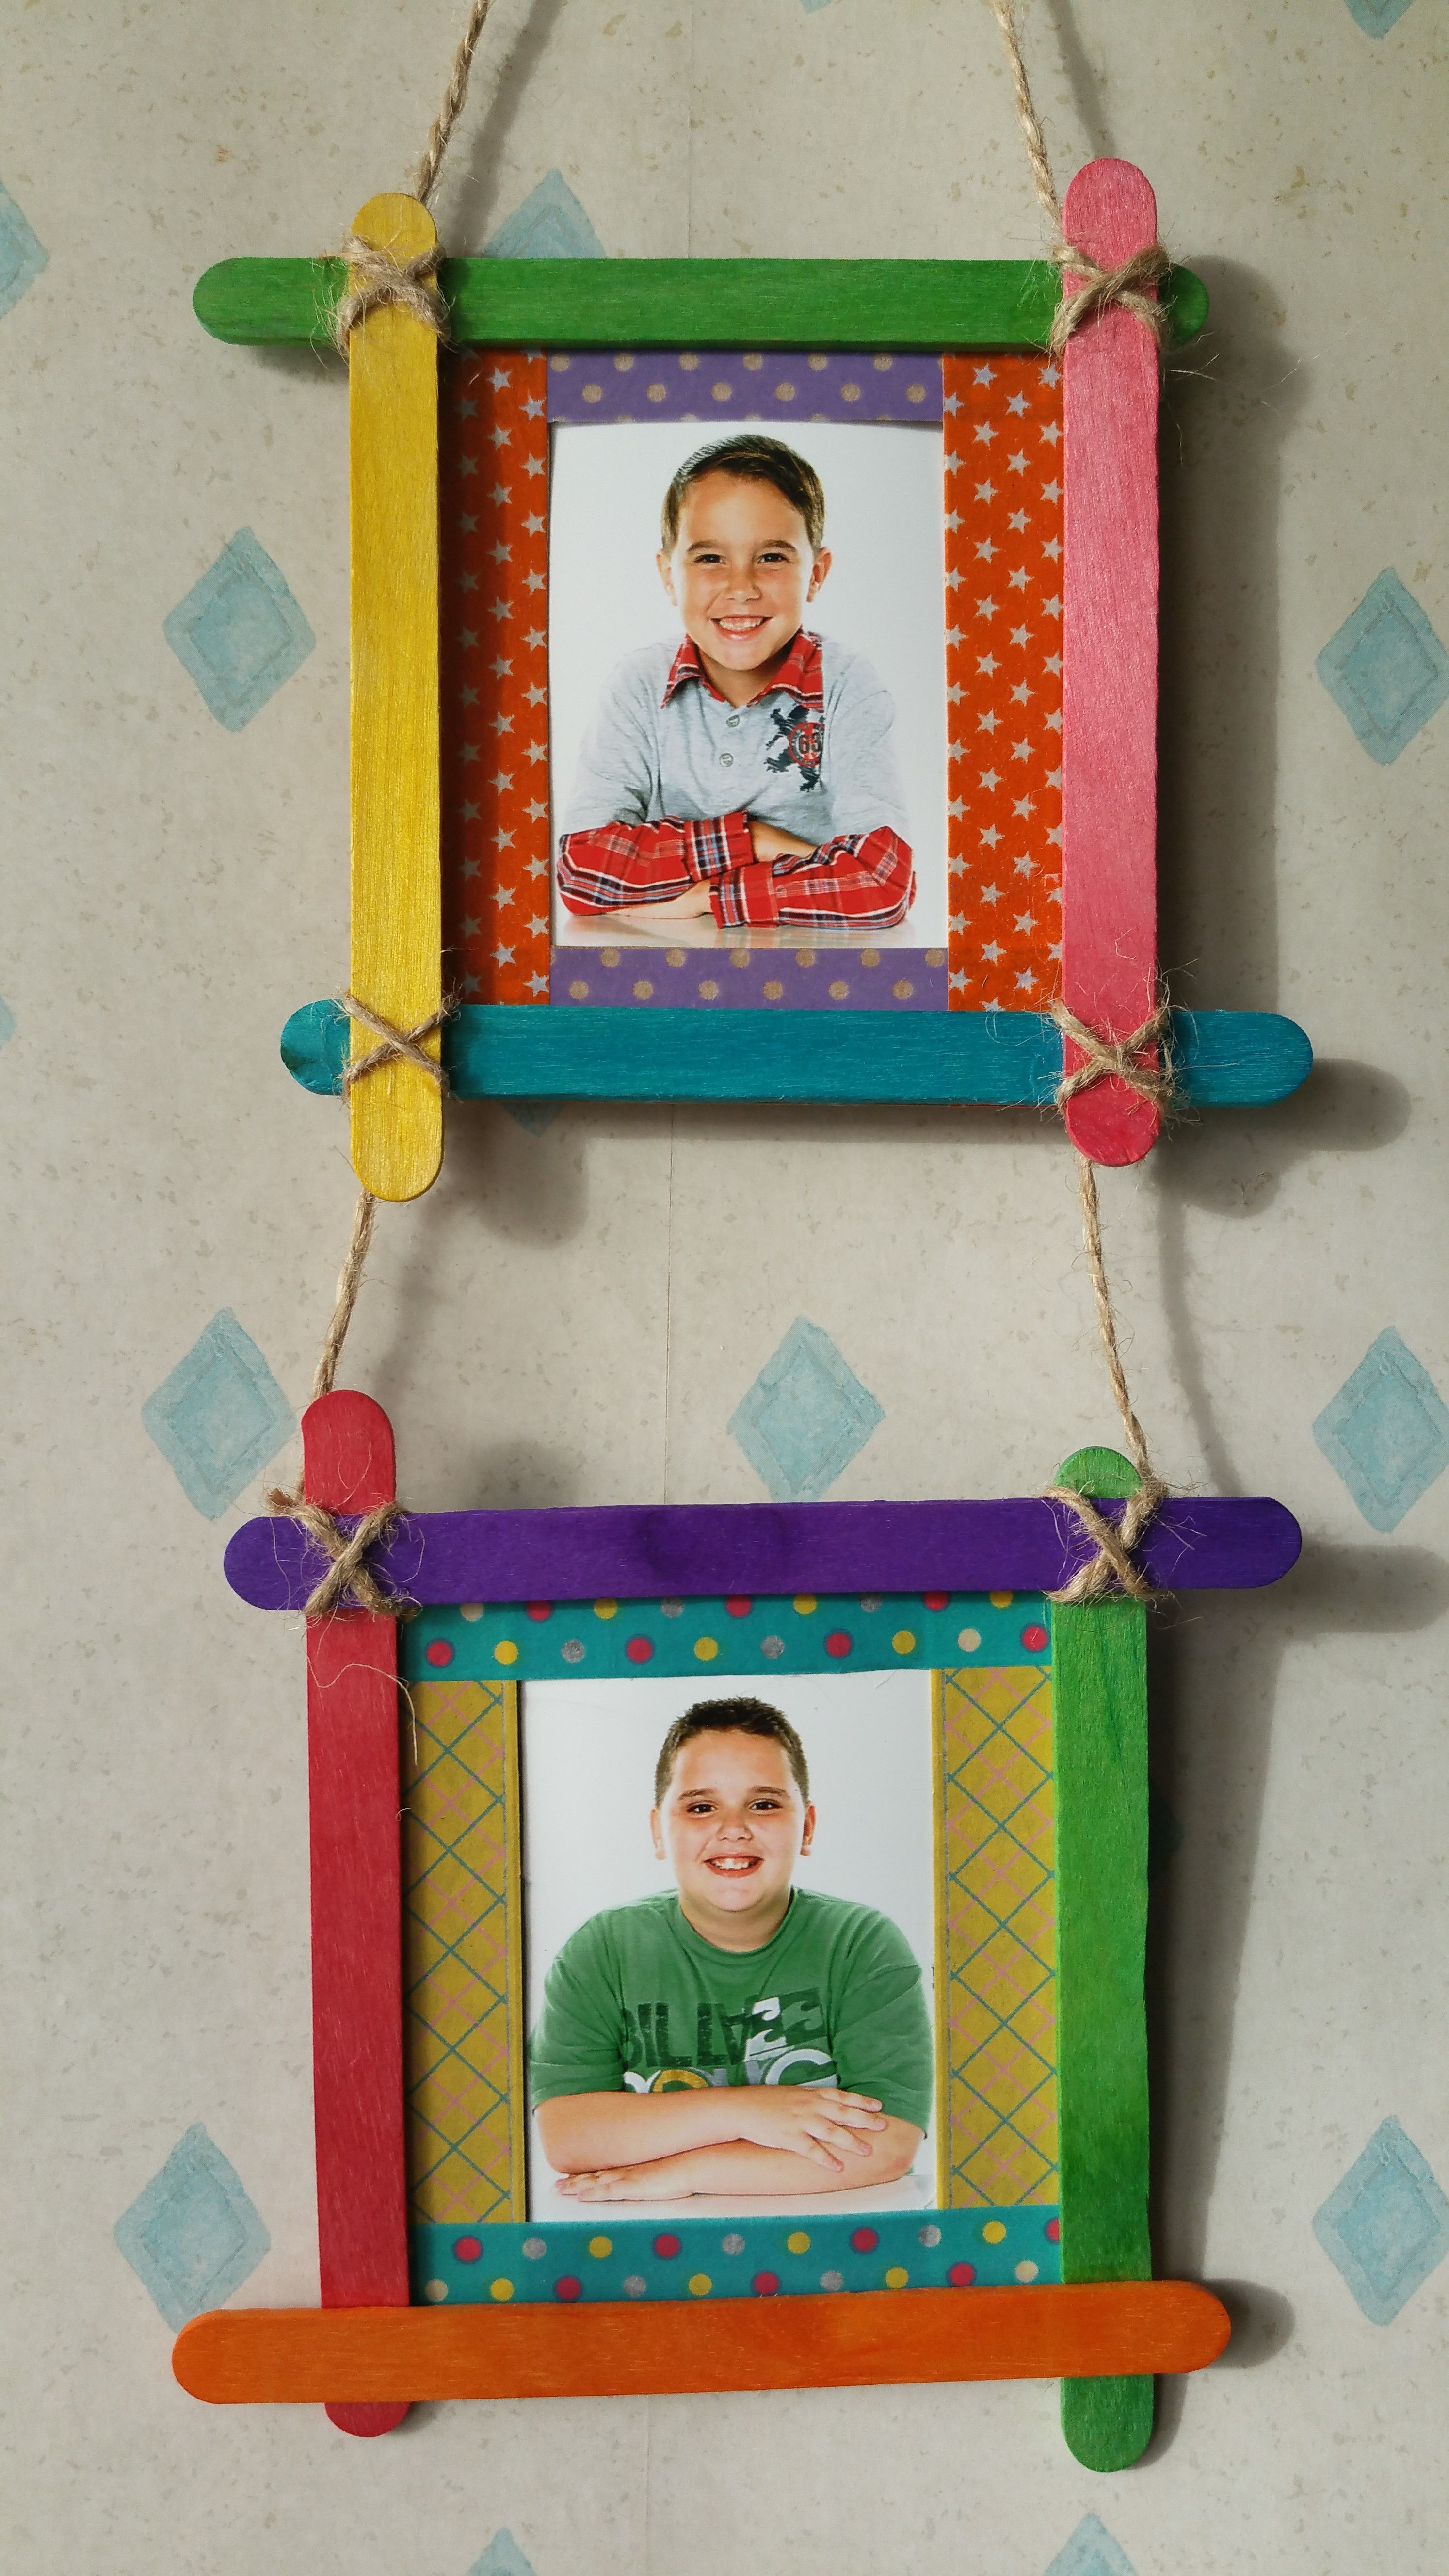 Popsicle stick church craft - Colourful Frames From Ice Cream Popsicle Sticks